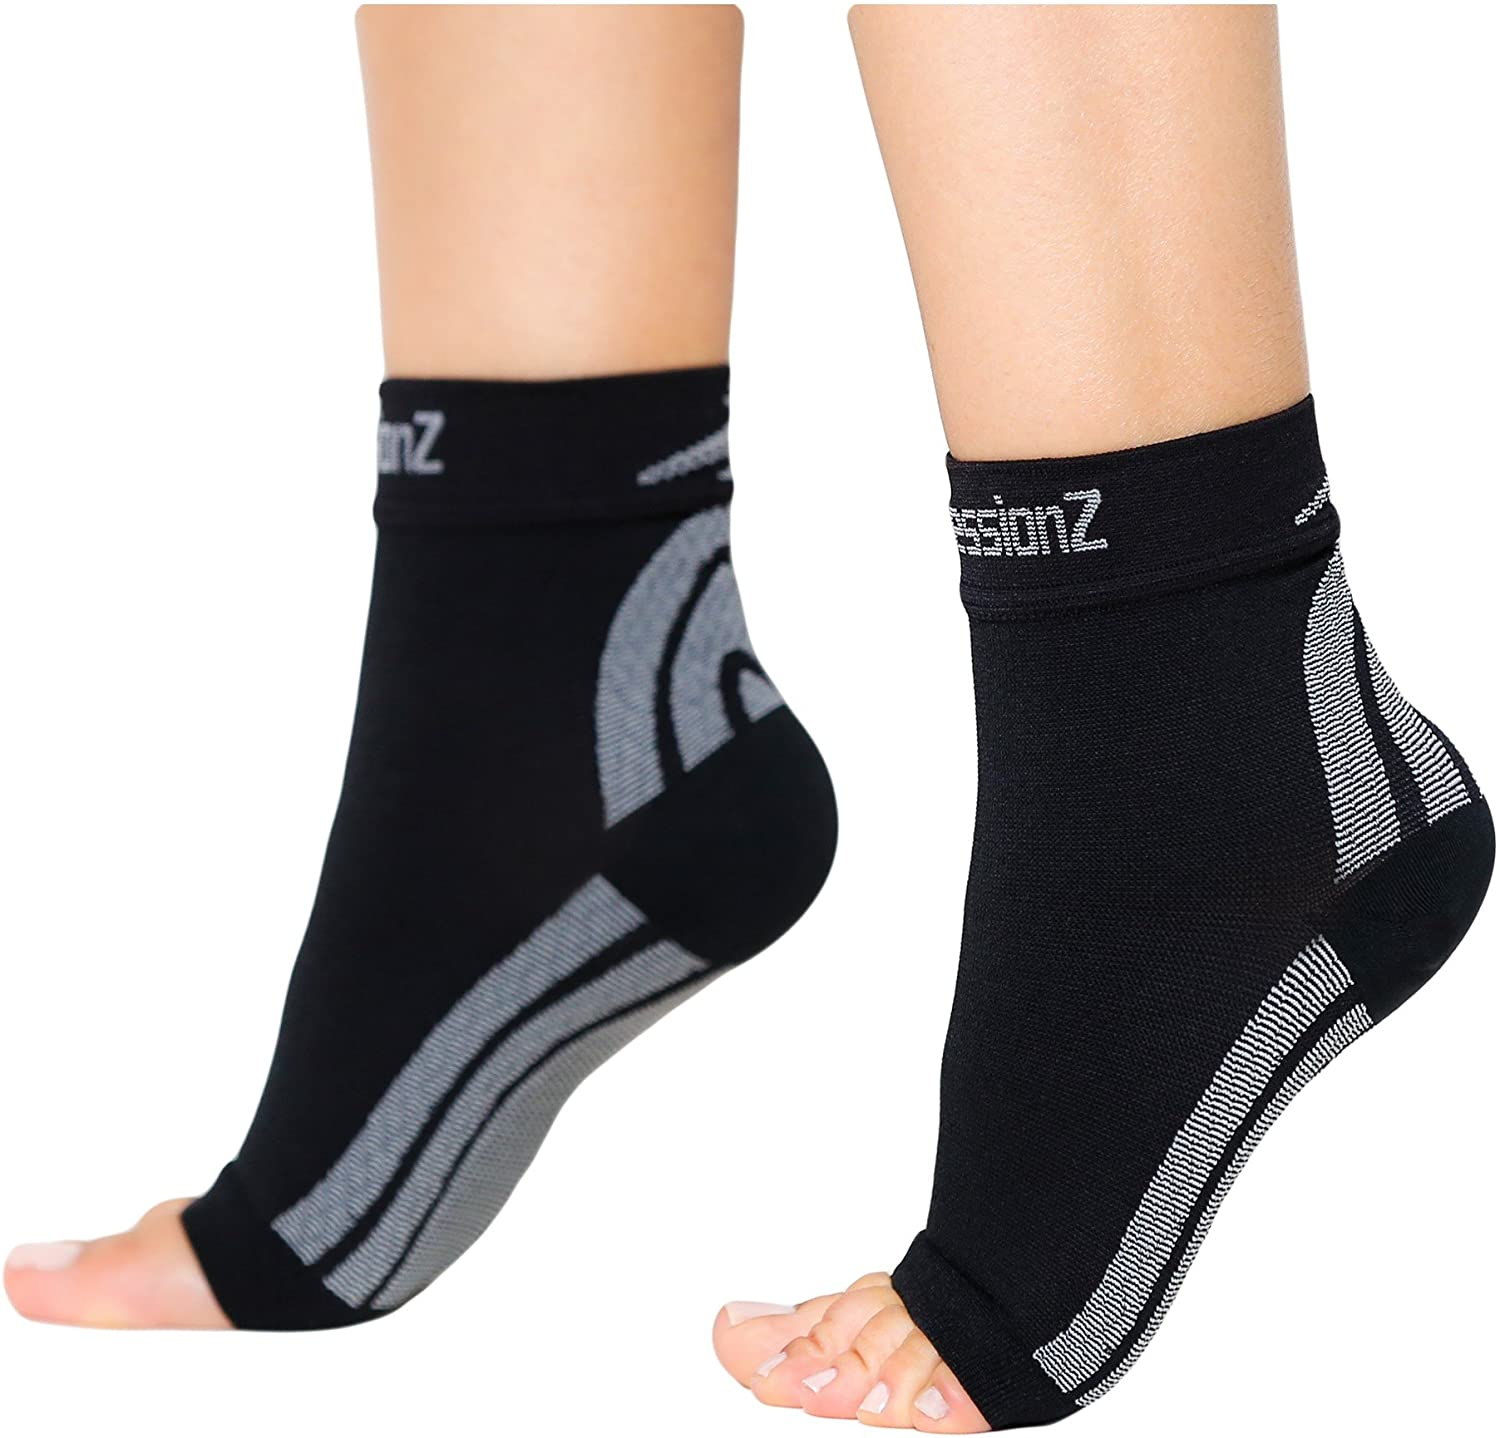 AVIDDA Plantar Fasciitis Socks with Heels Arch Supports Compression Sleeves Ideal for Arthritis Pain Relief and Suitable for Sports Ankle Supports for Men and Women